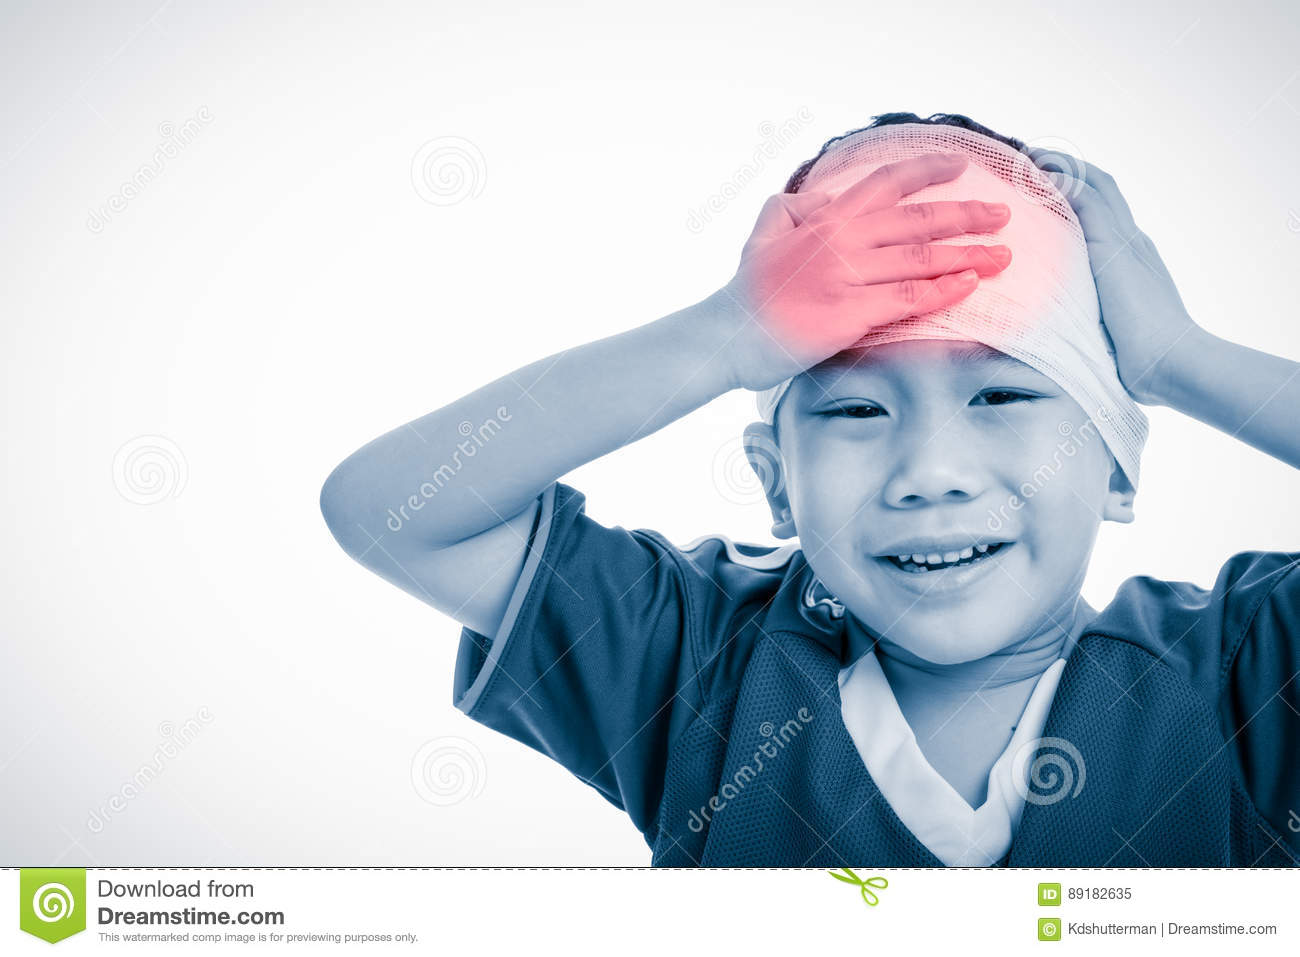 Sports injury. Asian child with trauma of the head painful crying. Isolated on white.